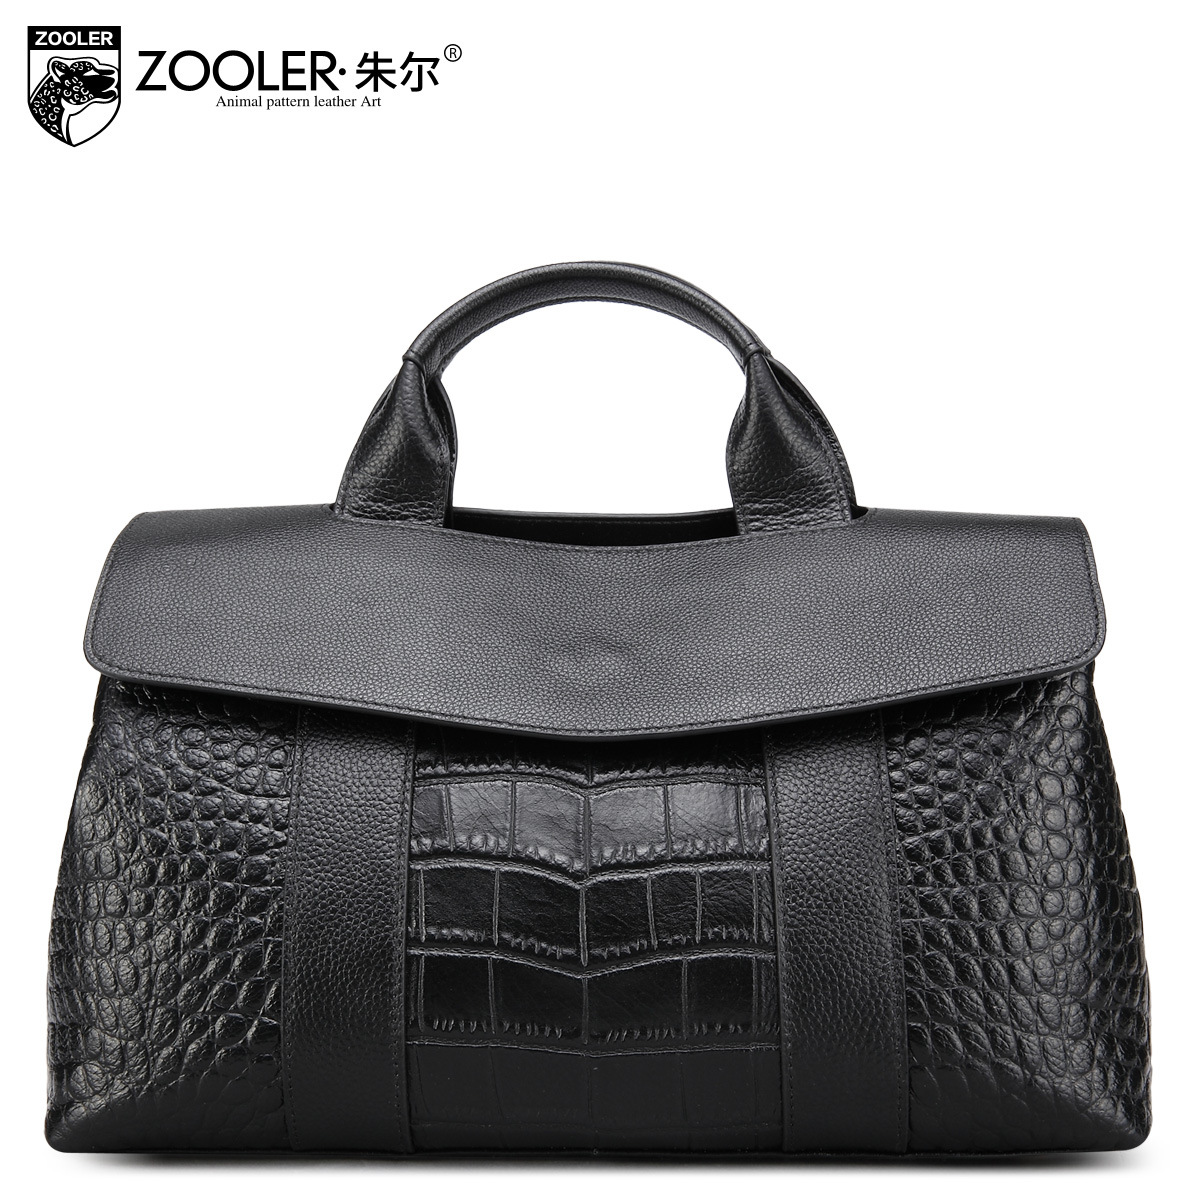 ZOOLER Brand Luxury Handbags Women Bags Designer Genuine Leather Bags Fashion Crocodile Pattern Handbag Messenger Shoulder Bag zooler fashion casual shoulder bag crossbody bags luxury brand designer handbag women high quality genuine leather purse h123